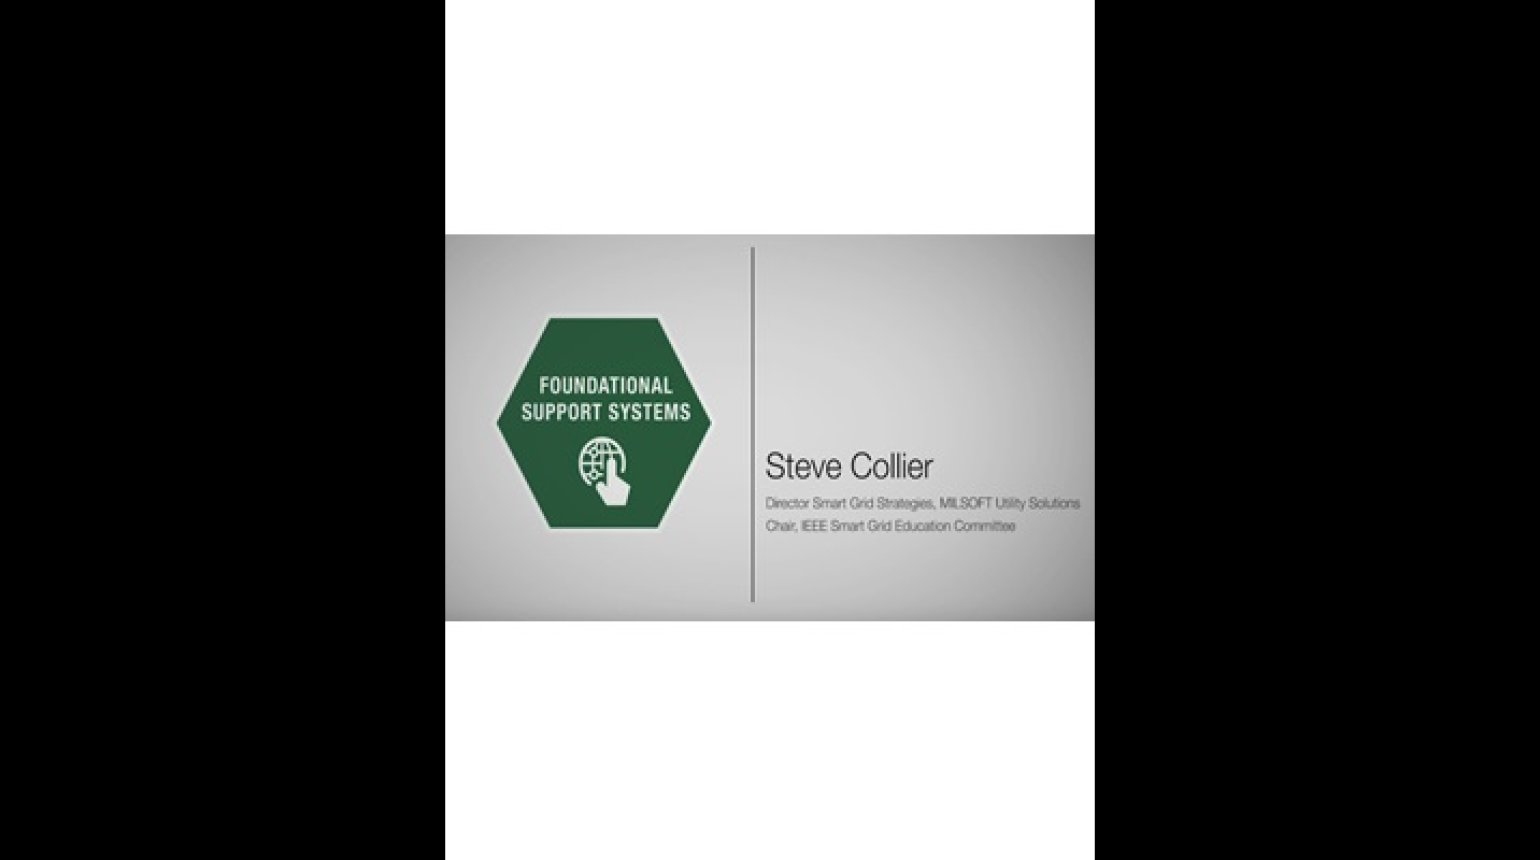 Foundational Support Systems Domain - Steven Collier